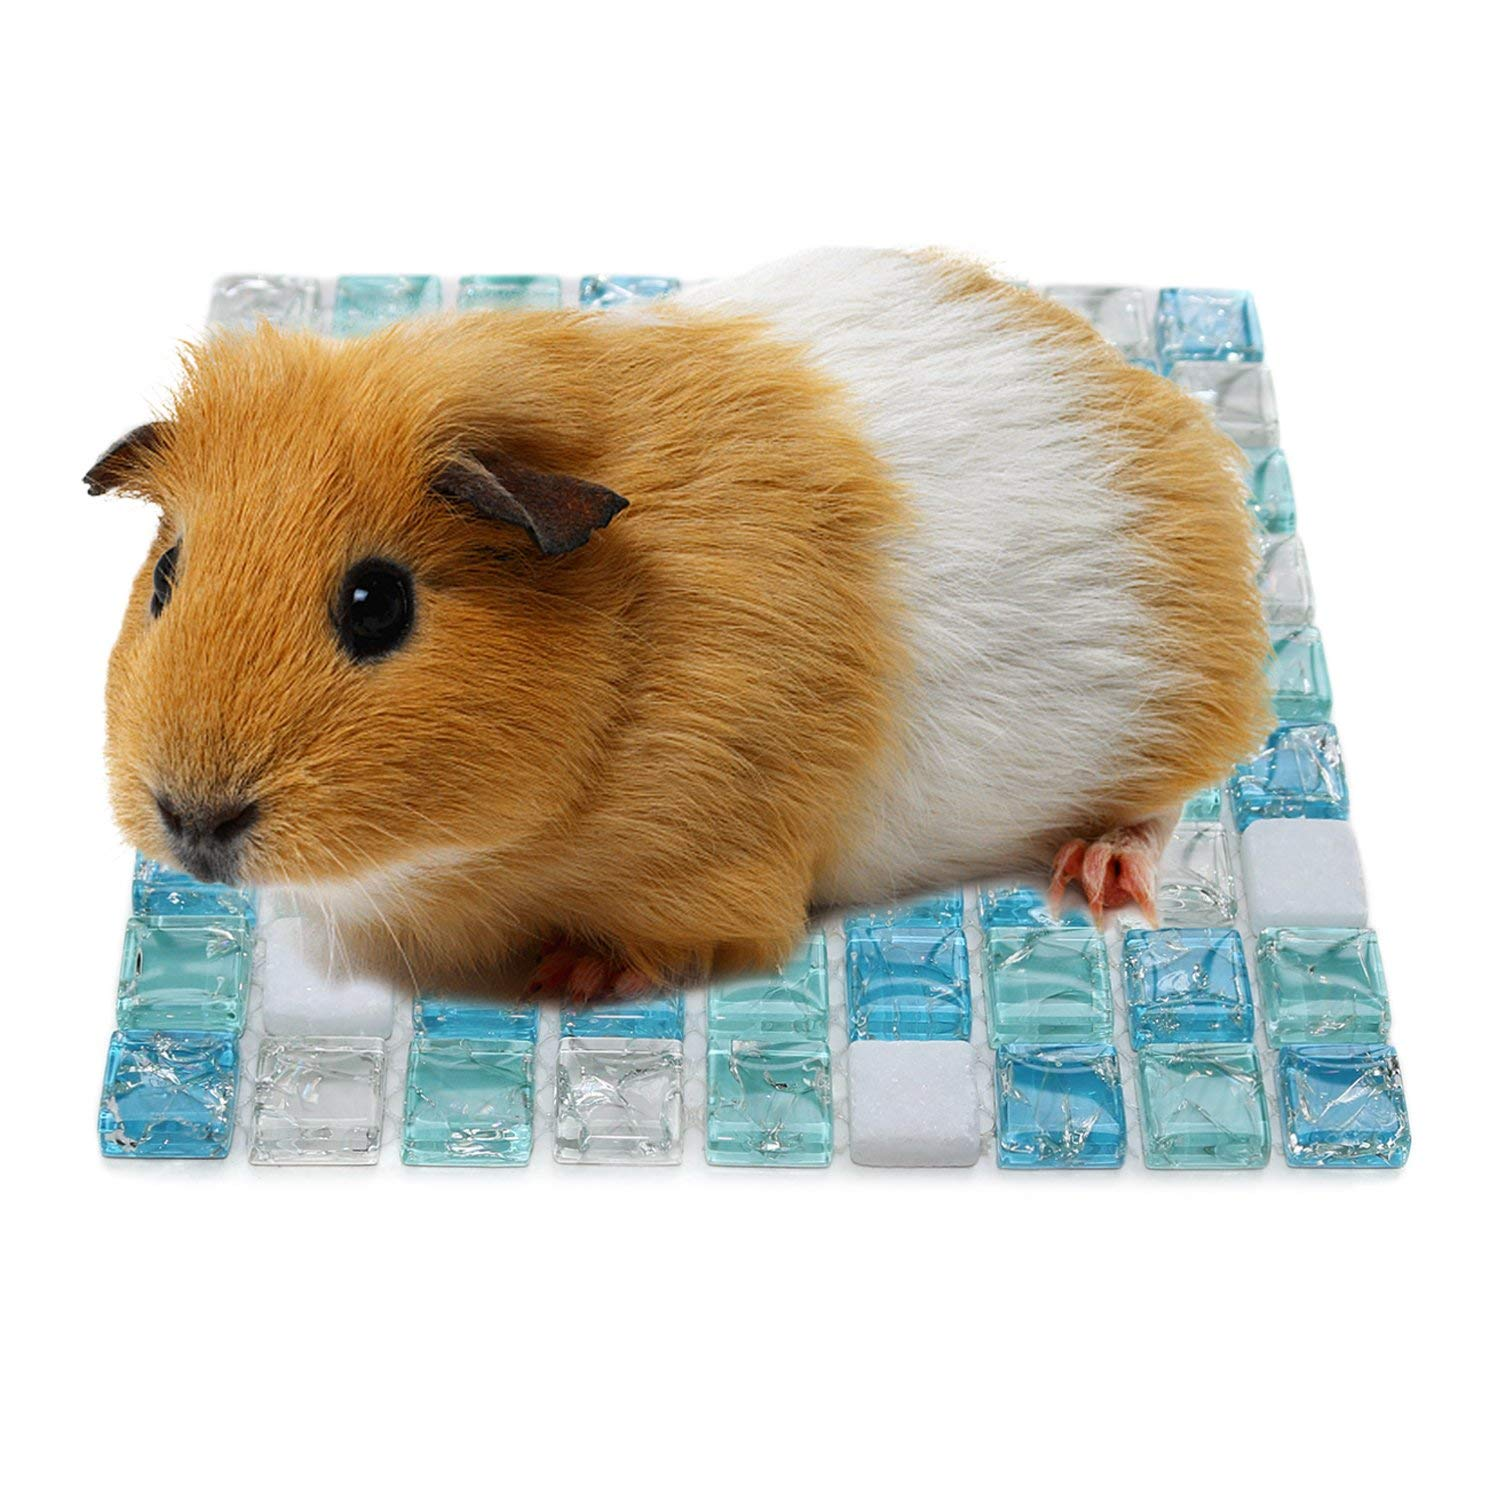 Cages Small Animal Supplies Cute Round Warm Pet Velvet Sleep Mat Pad Bed Cushion Nest For Hamster Hedgehog Squirrel Mice Rats Cage Small Animal Supplies Cheap Sales